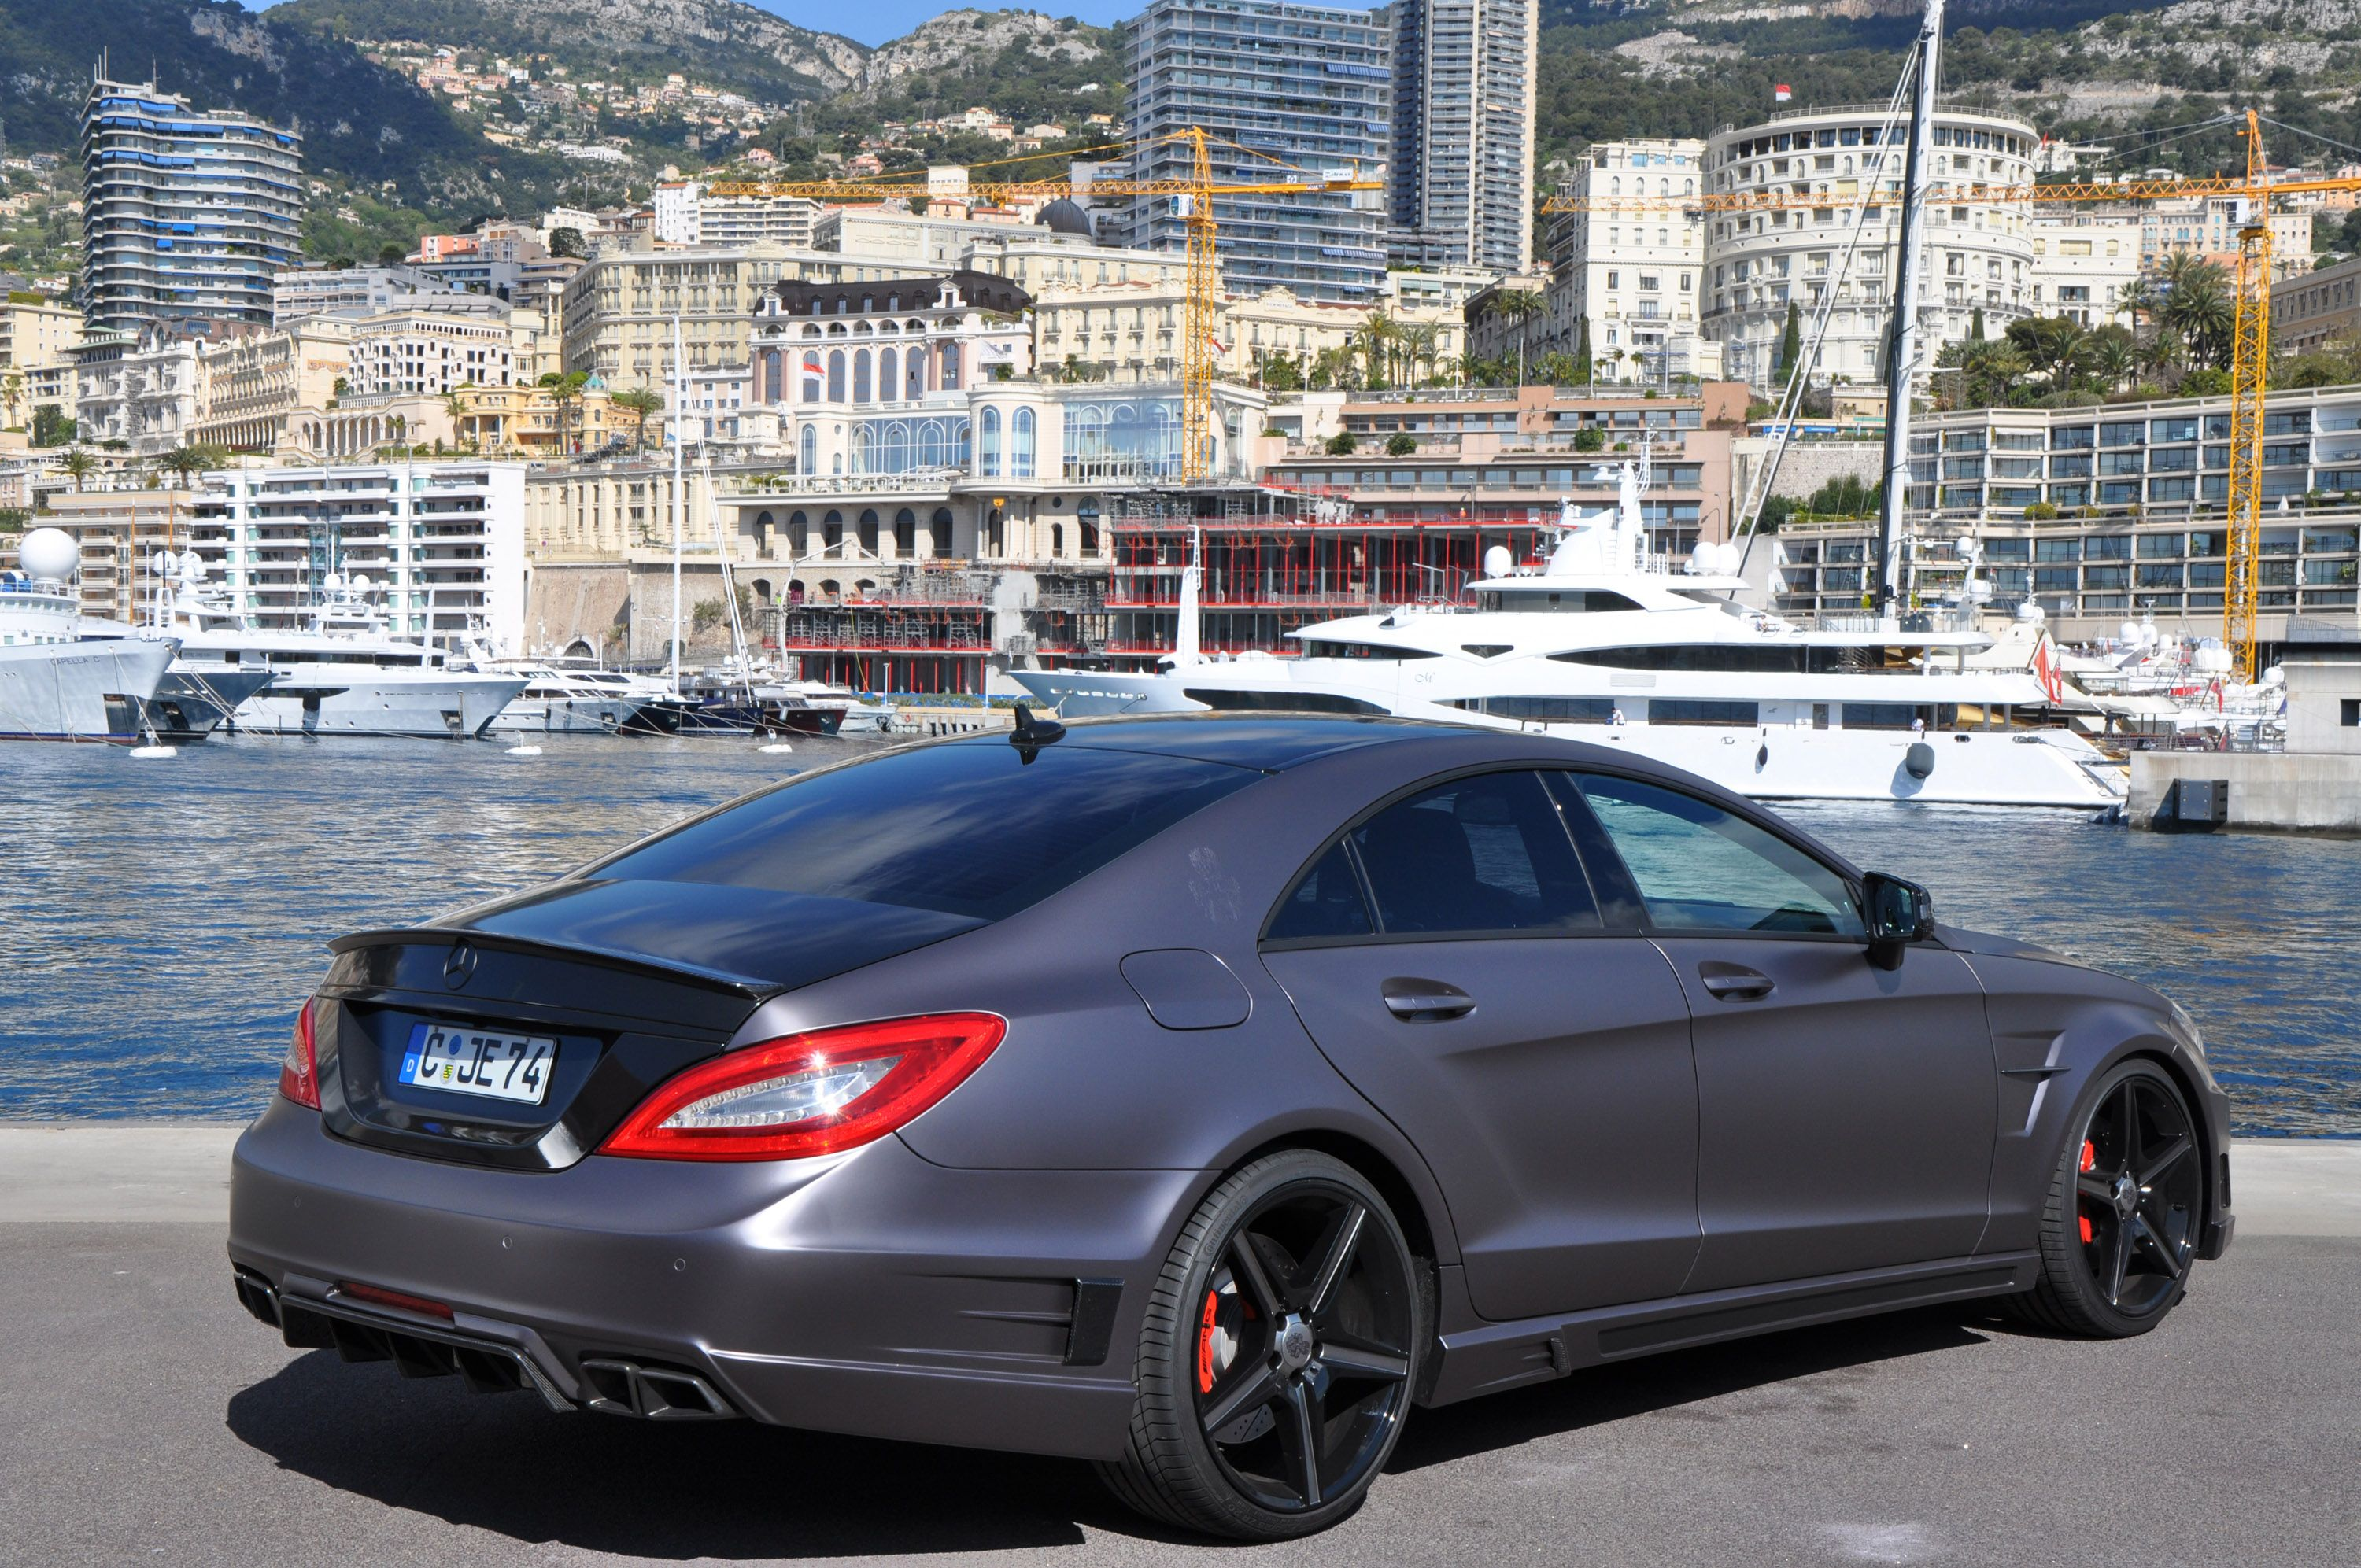 GSC Mercedes Benz CLS 63 AMG Cars Pinterest